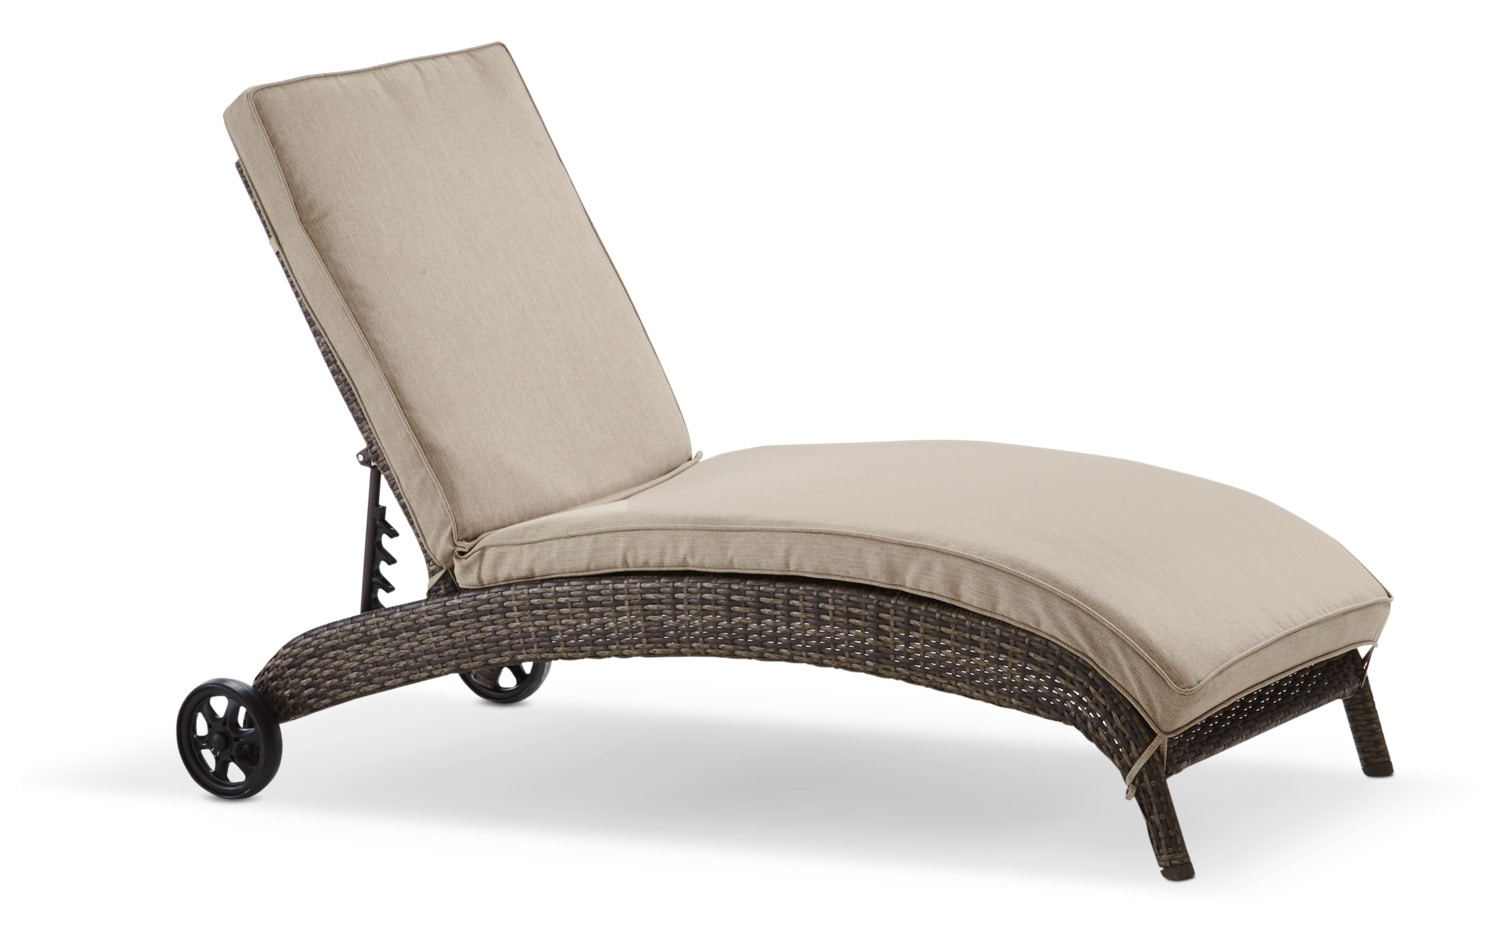 Orion Chaise Lounge - Beige and Brown